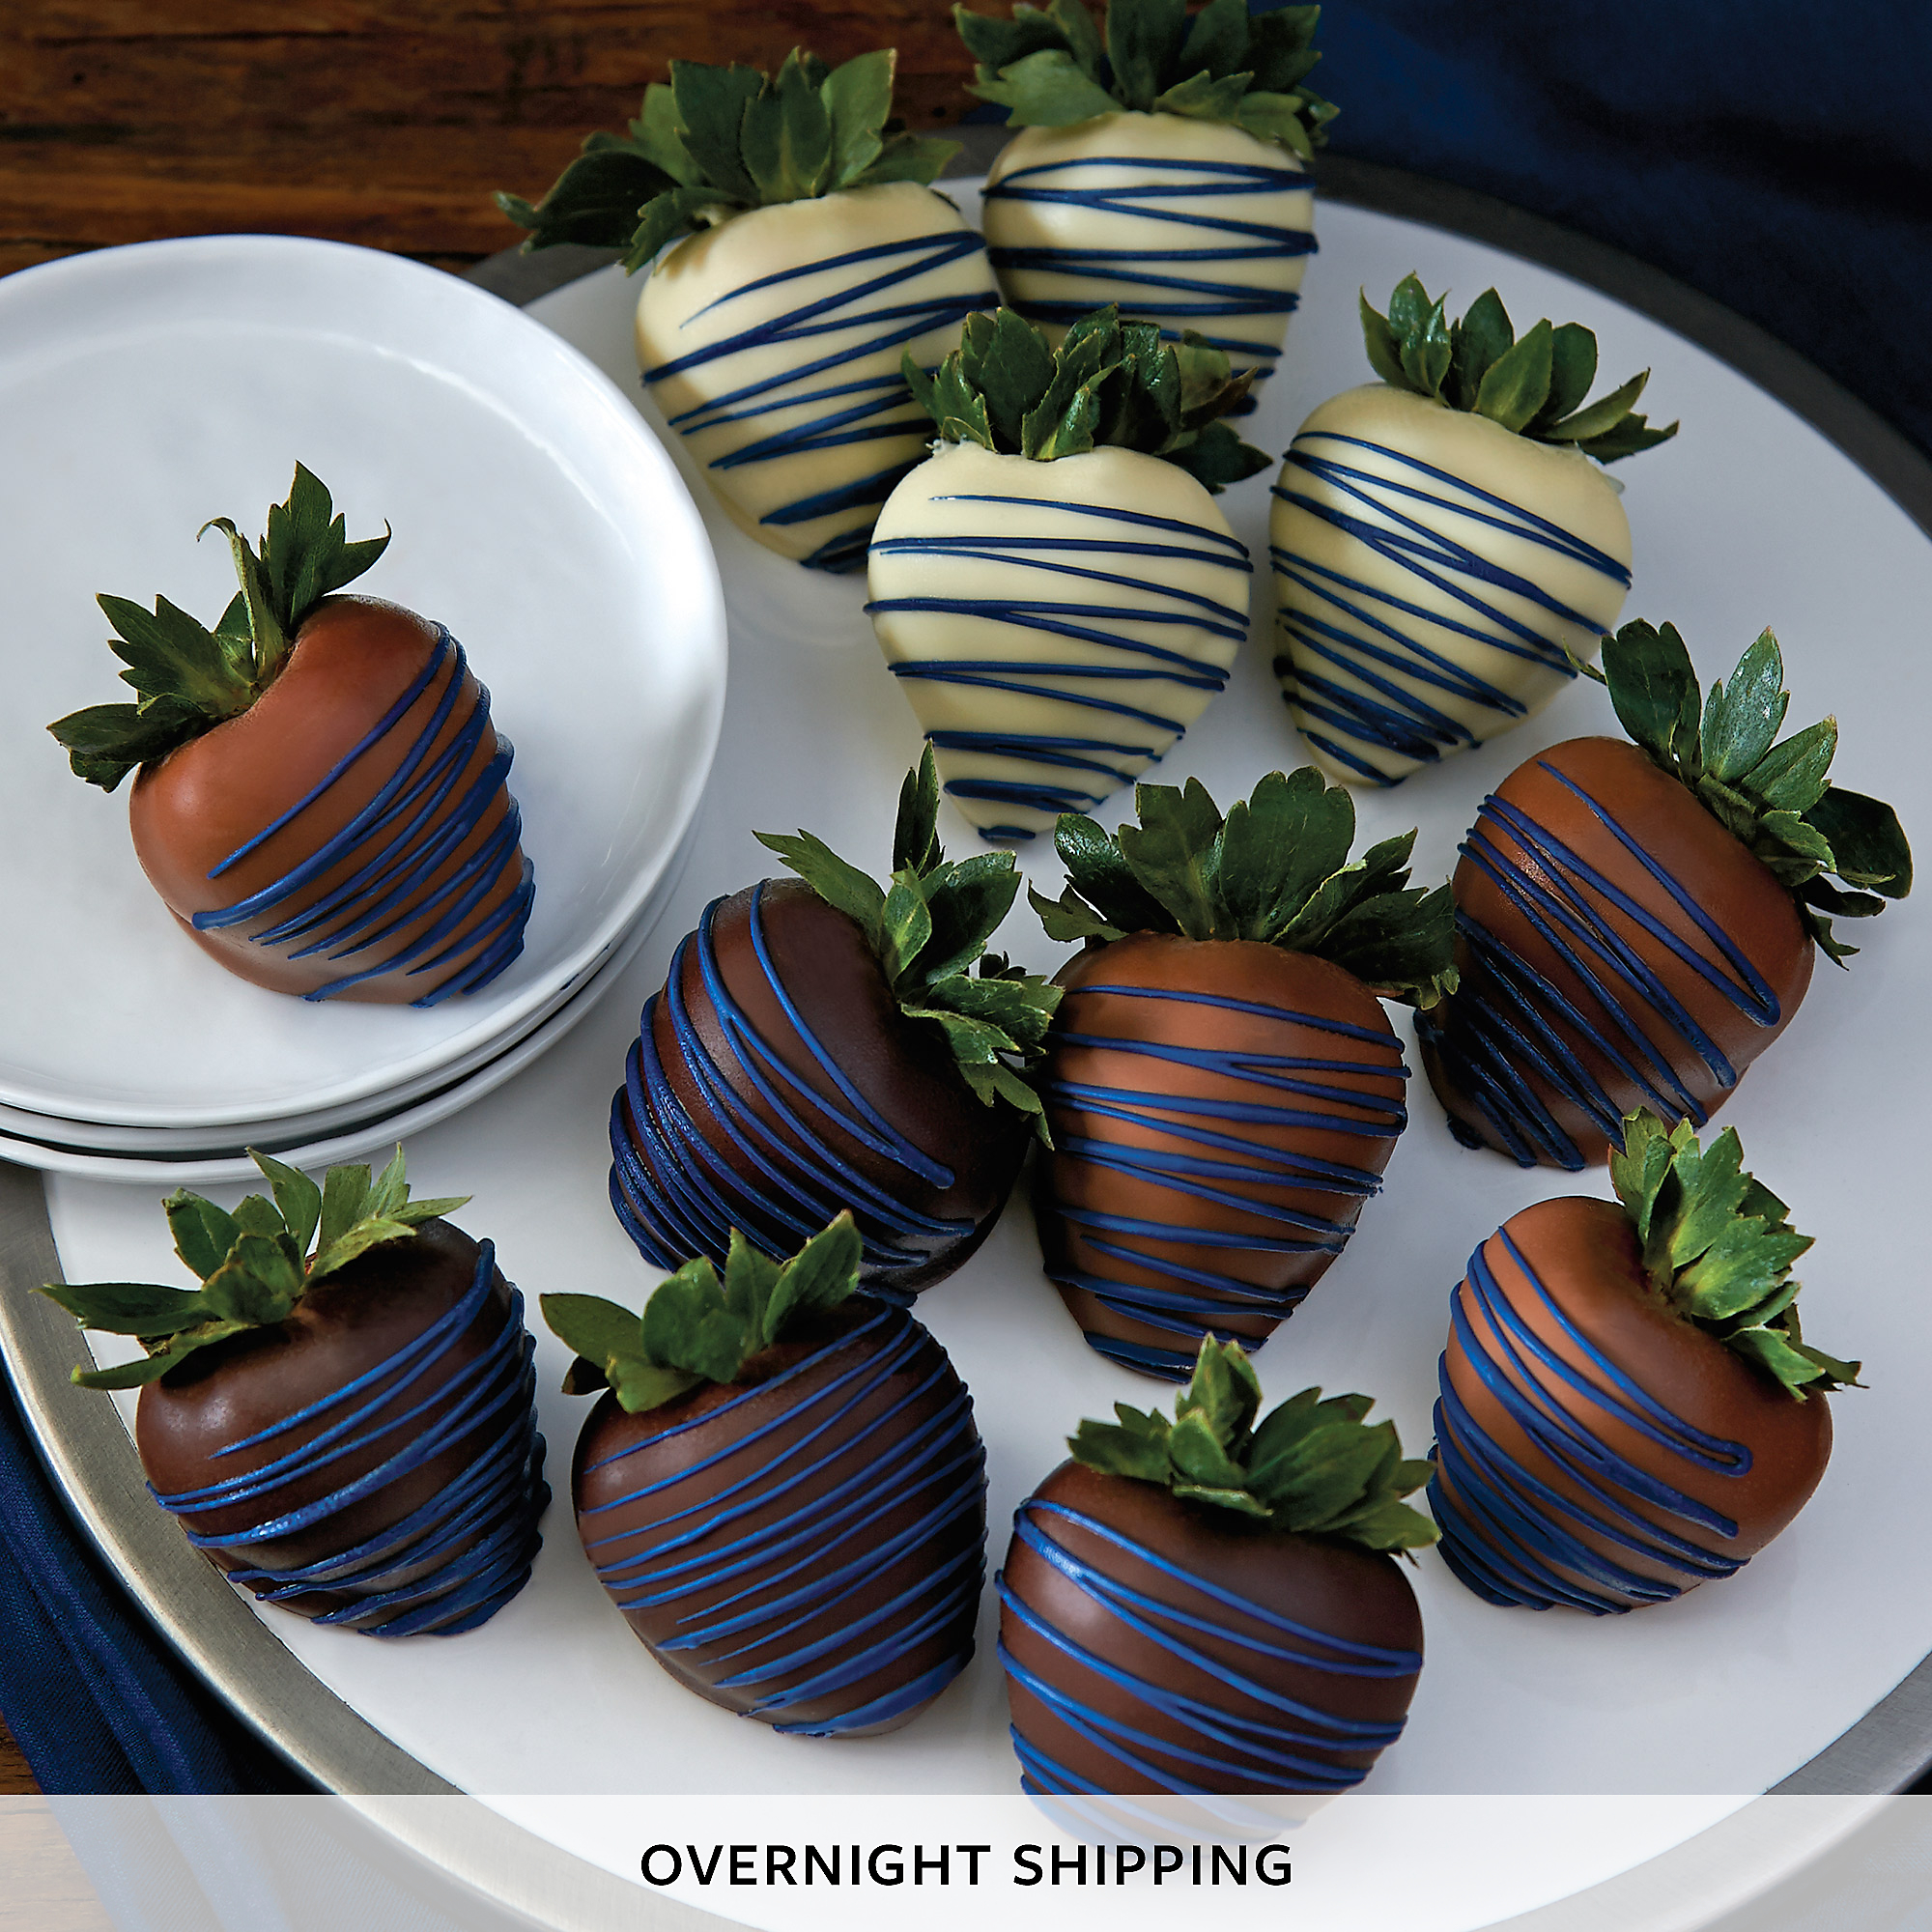 Blue Drizzle Hand-Dipped Chocolate-Covered Strawberries - One Dozen